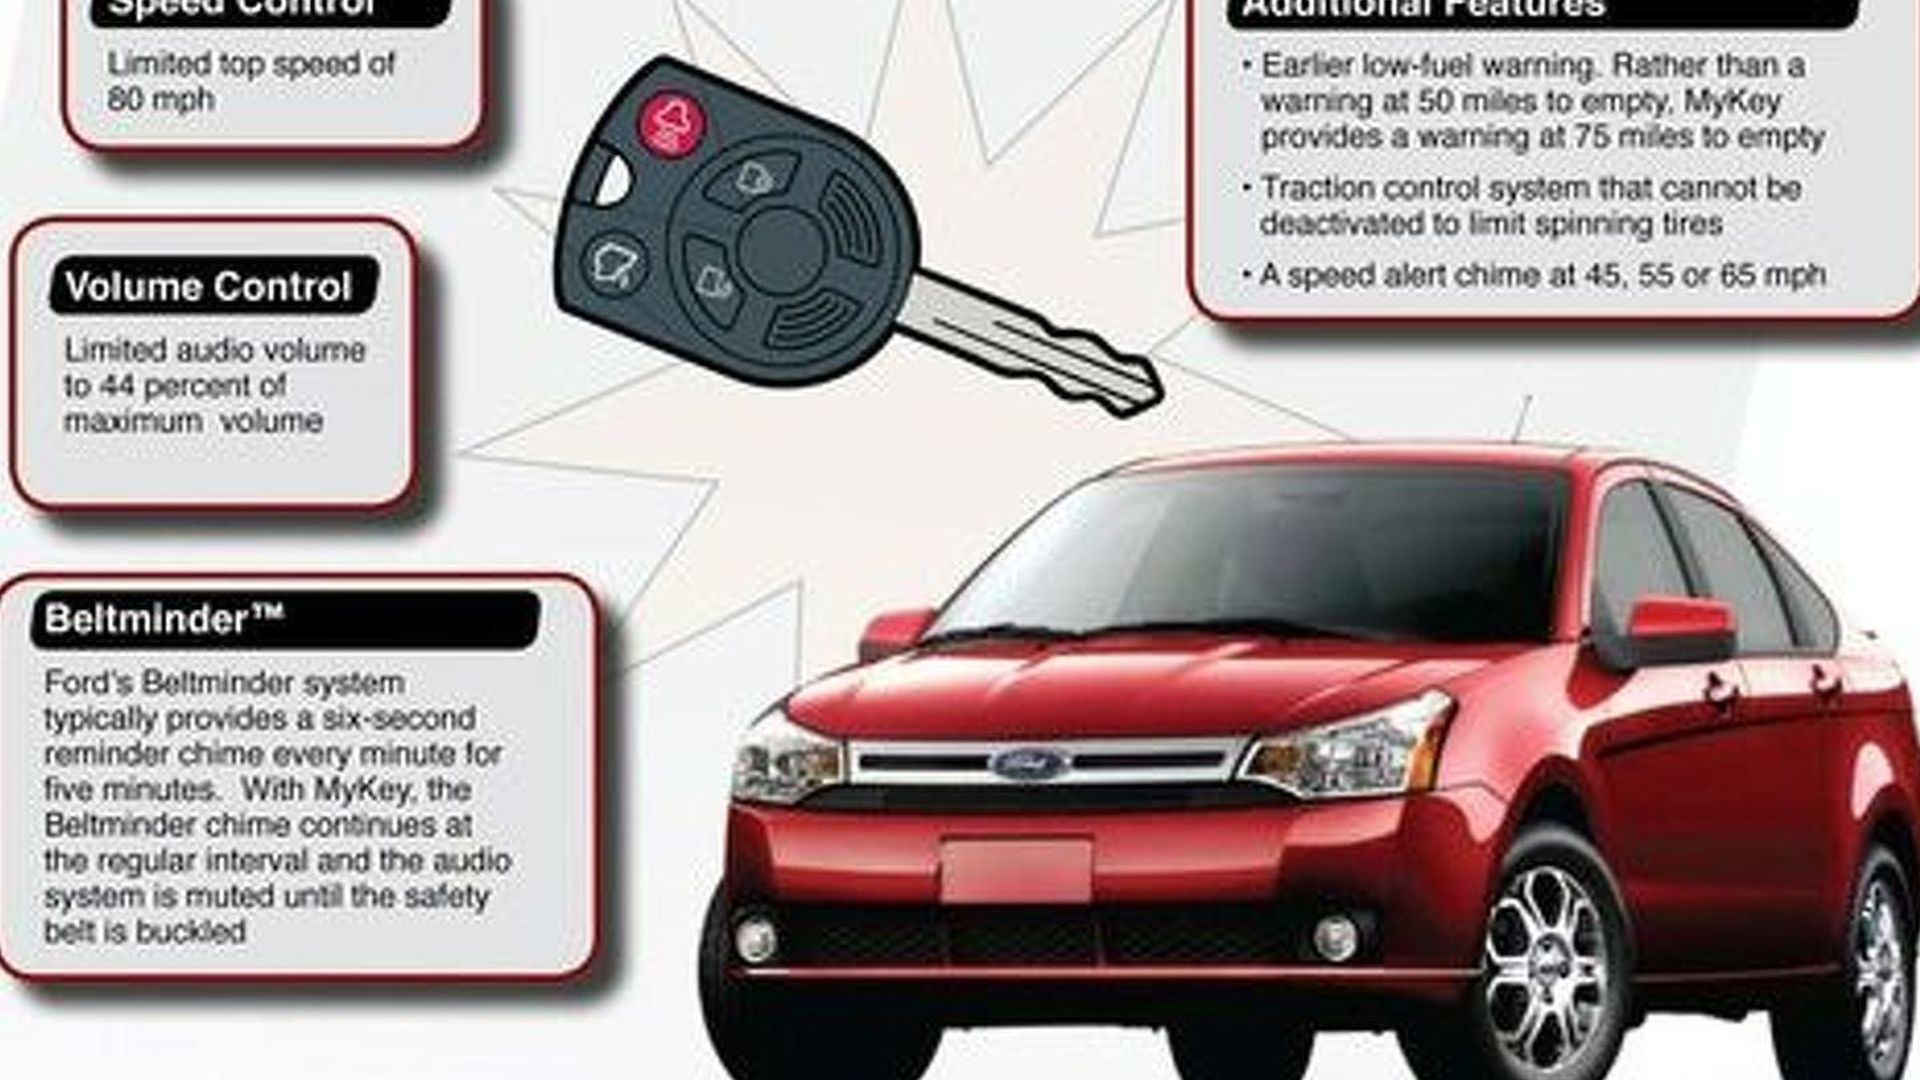 Ford Introduces MyKey Parenting Tool for Teen Drivers